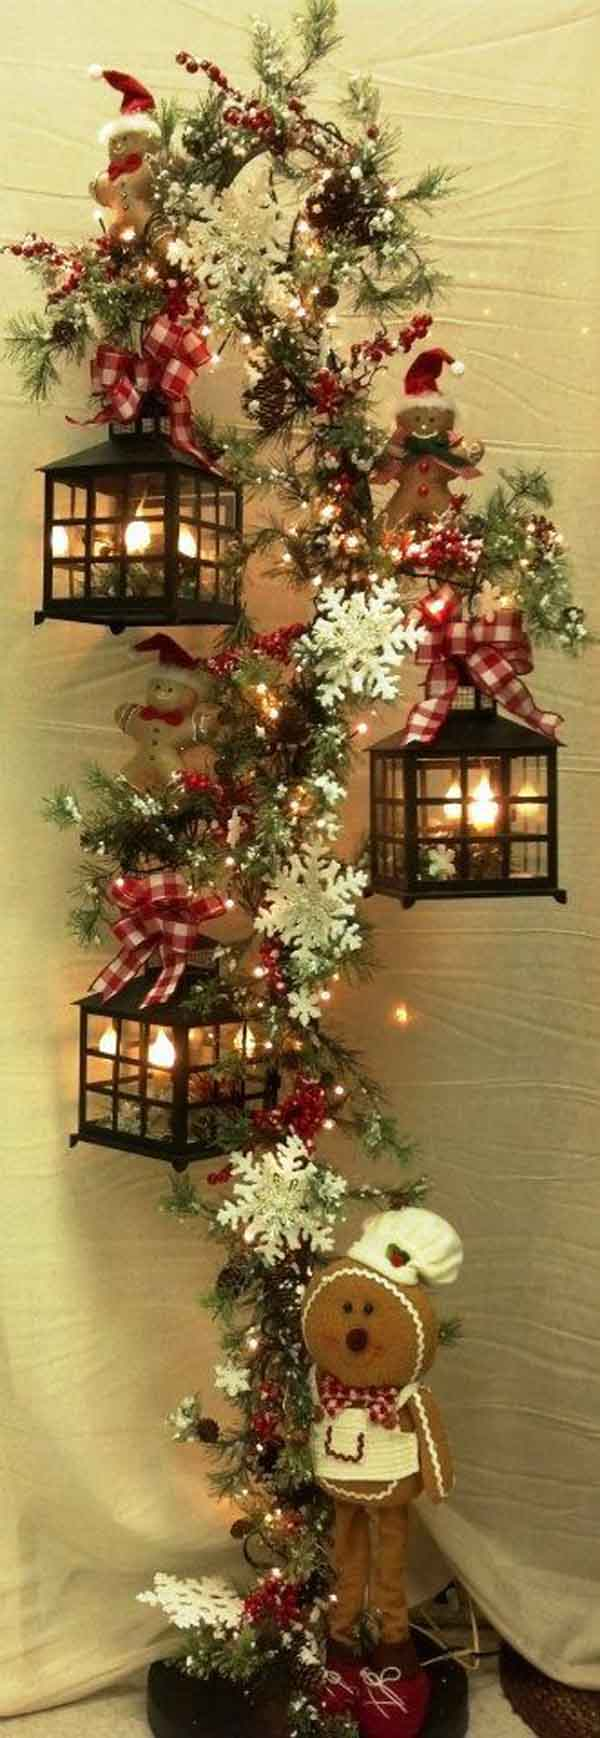 Top christmas lantern decorations that brighten pinterest christmas stunning christmas lantern decorations to brighten up the holiday solutioingenieria Gallery